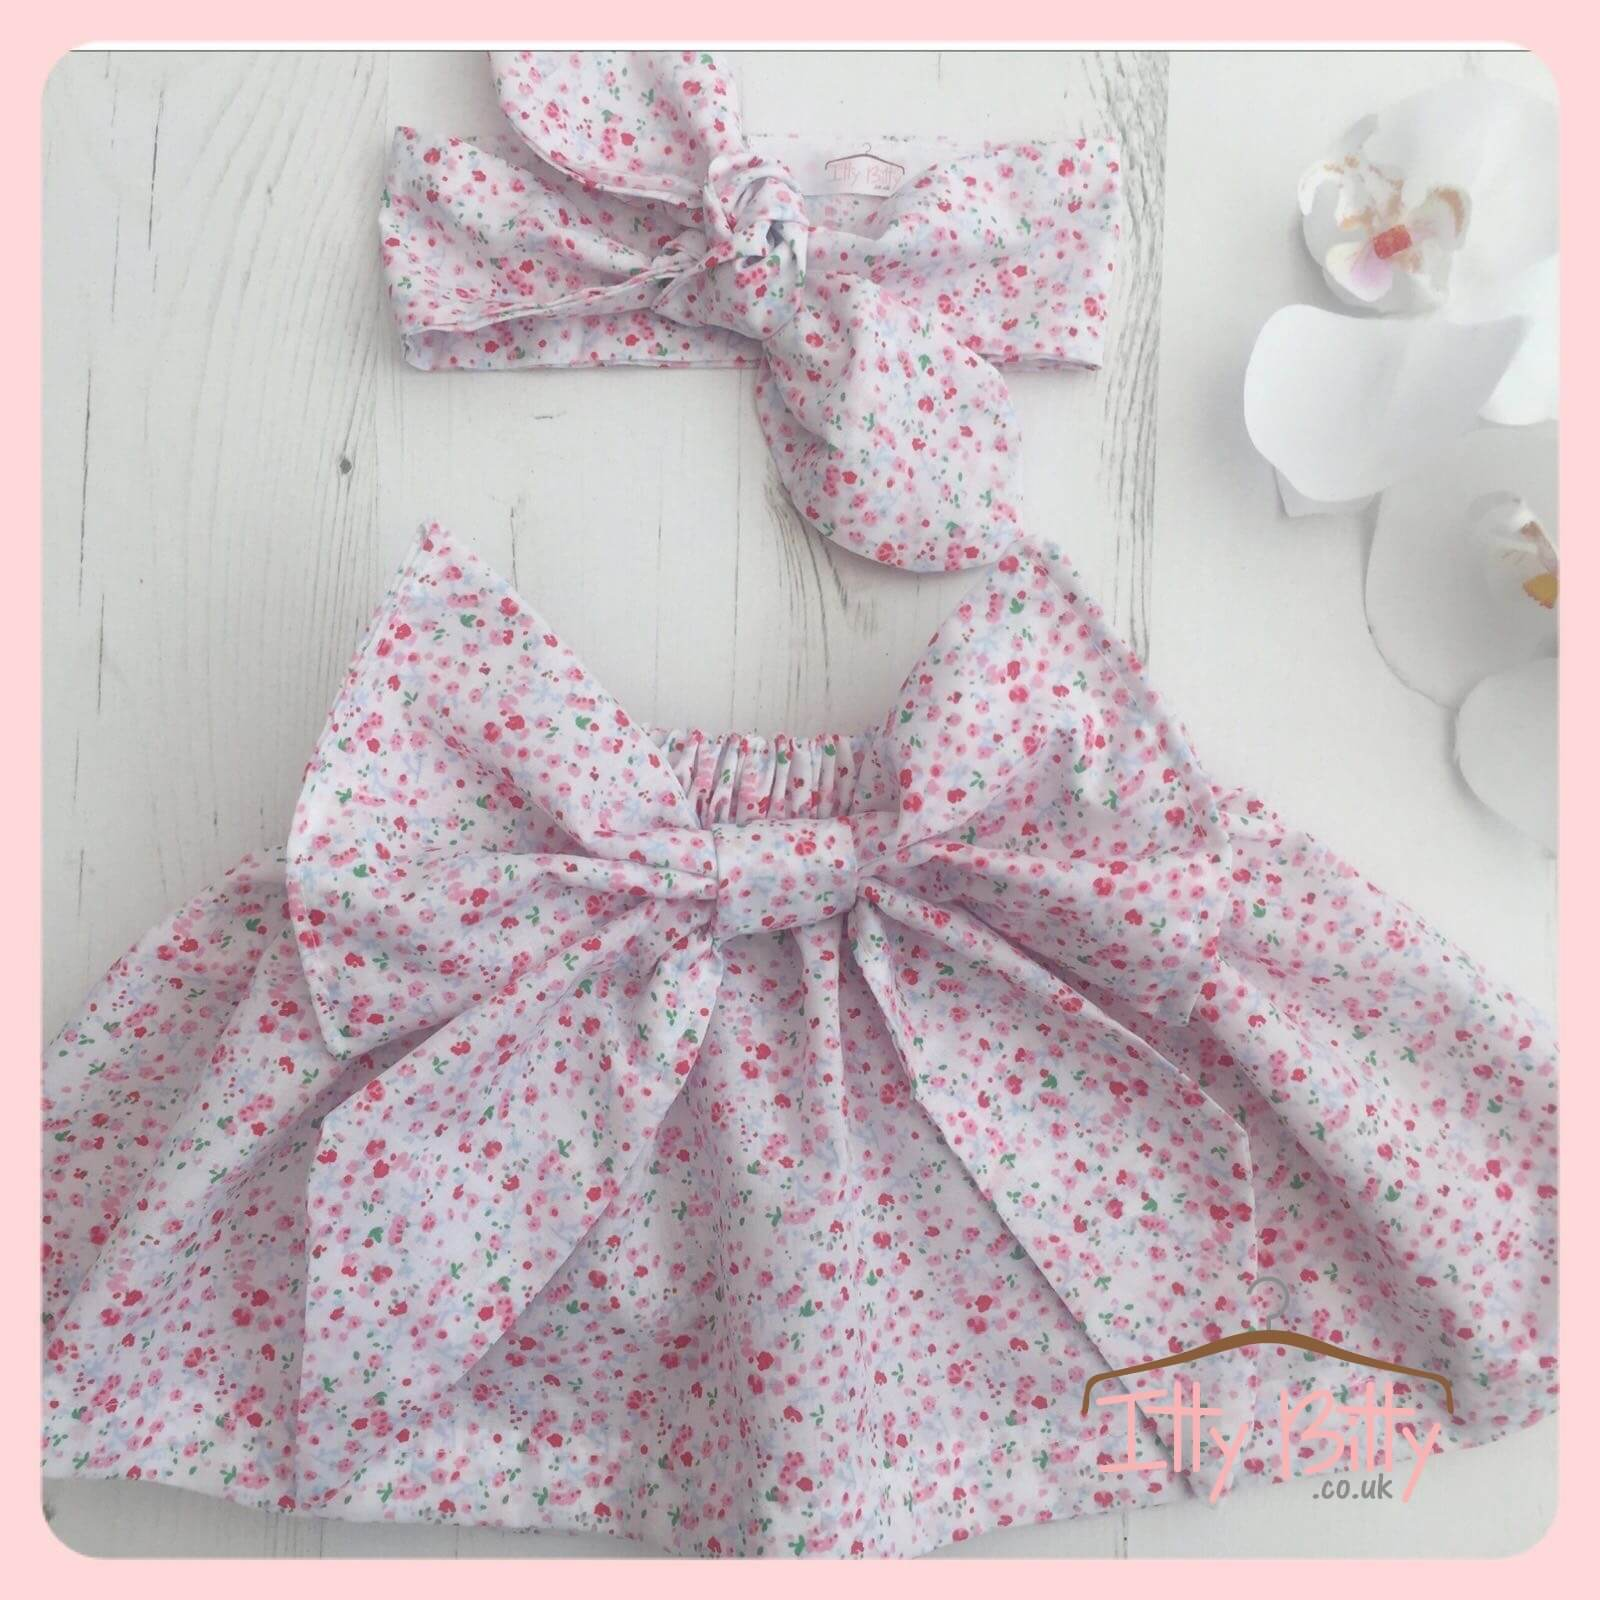 Handmade Statement Bow Skirt and Head Wrap Set Baby Boutique Clothing